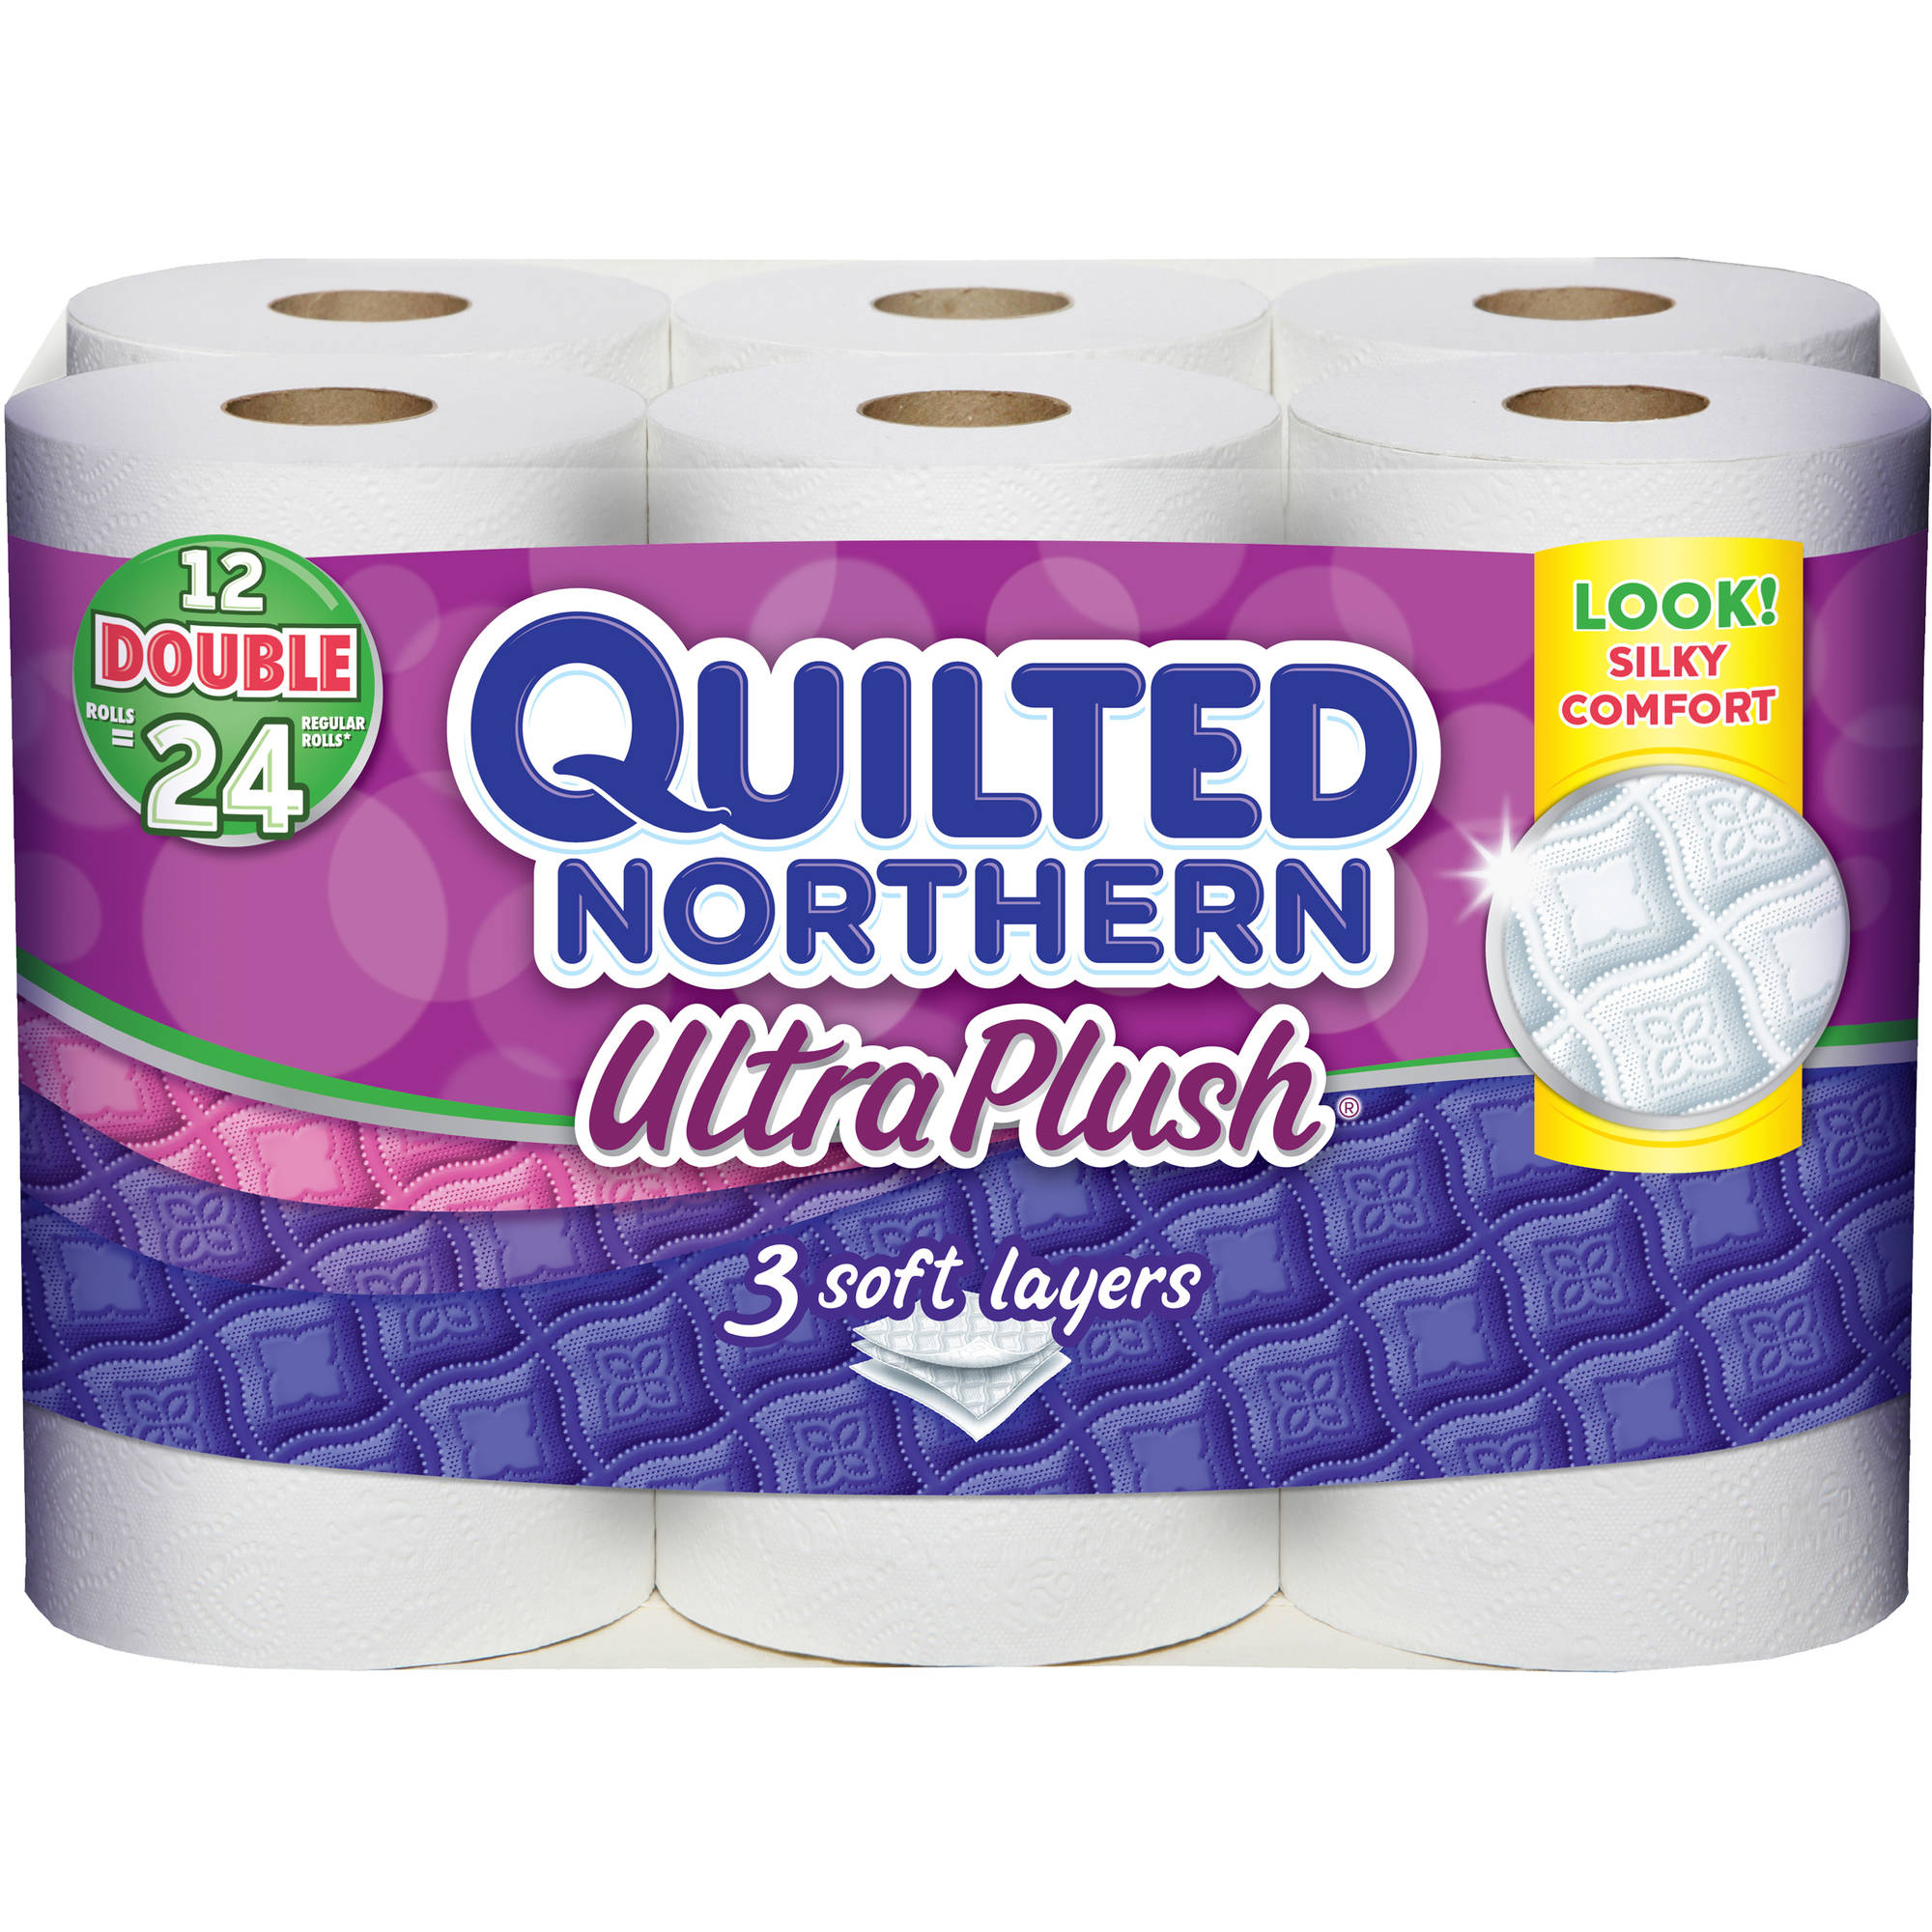 Quilted Northern Ultra Plush Toilet Paper, 12 Double Rolls, Bath Tissue